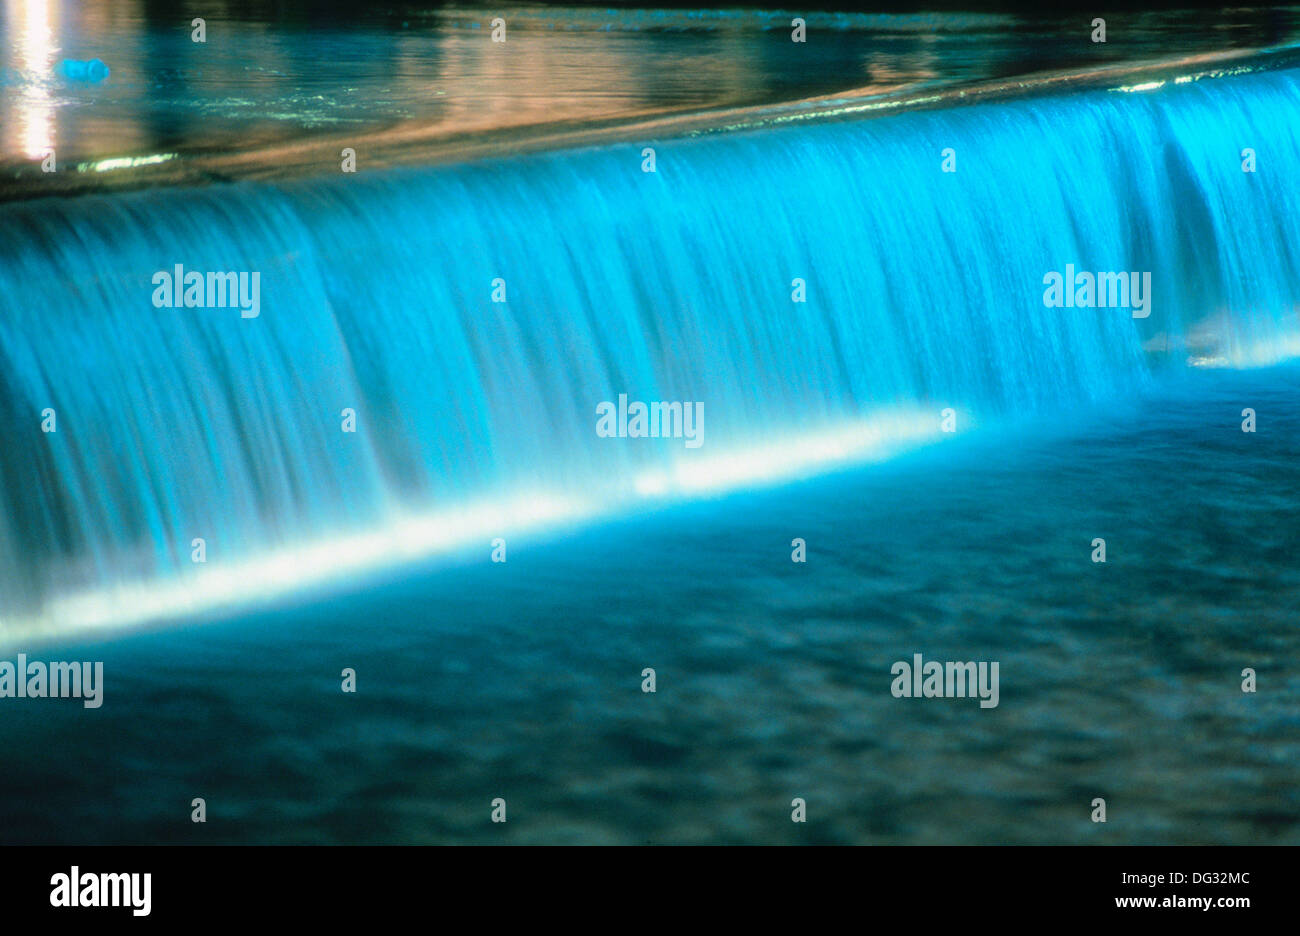 Water cascades in a water feature in a water display. - Stock Image